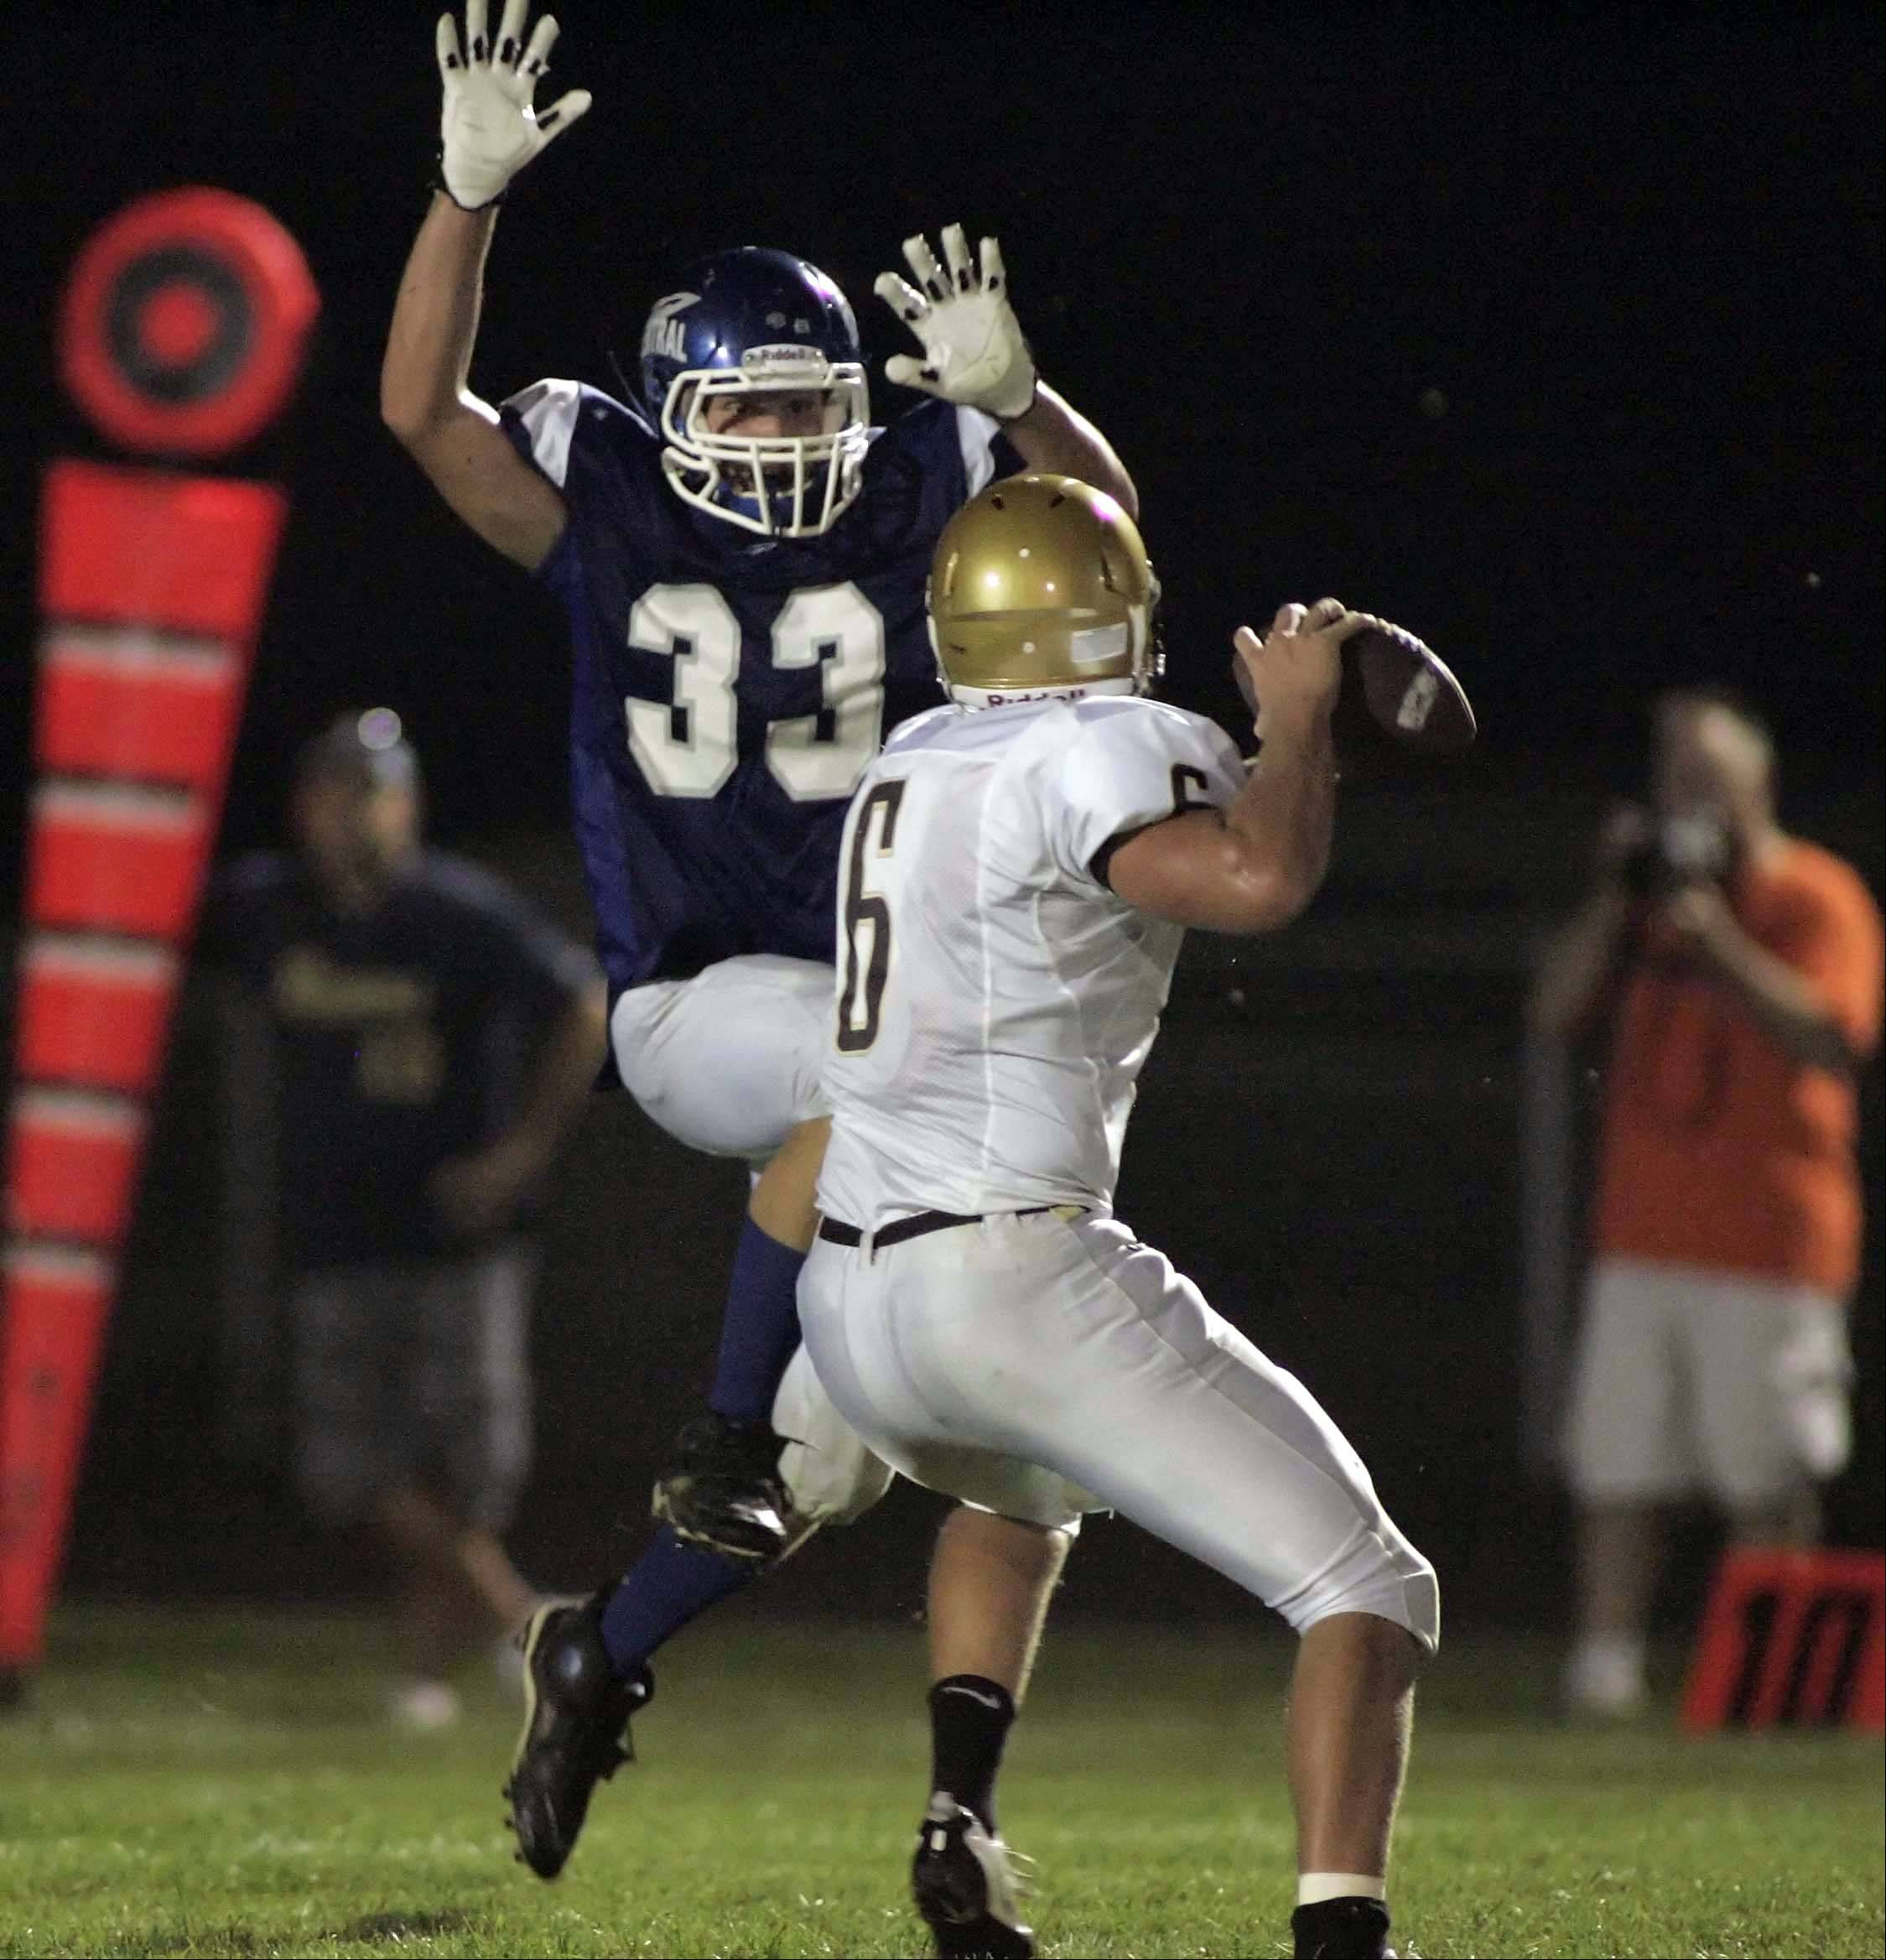 Burlington Central�s Nate Reed (33) puts the pressure on Sycamore�s Ryan Bartels on Friday night on Rocket Hill.